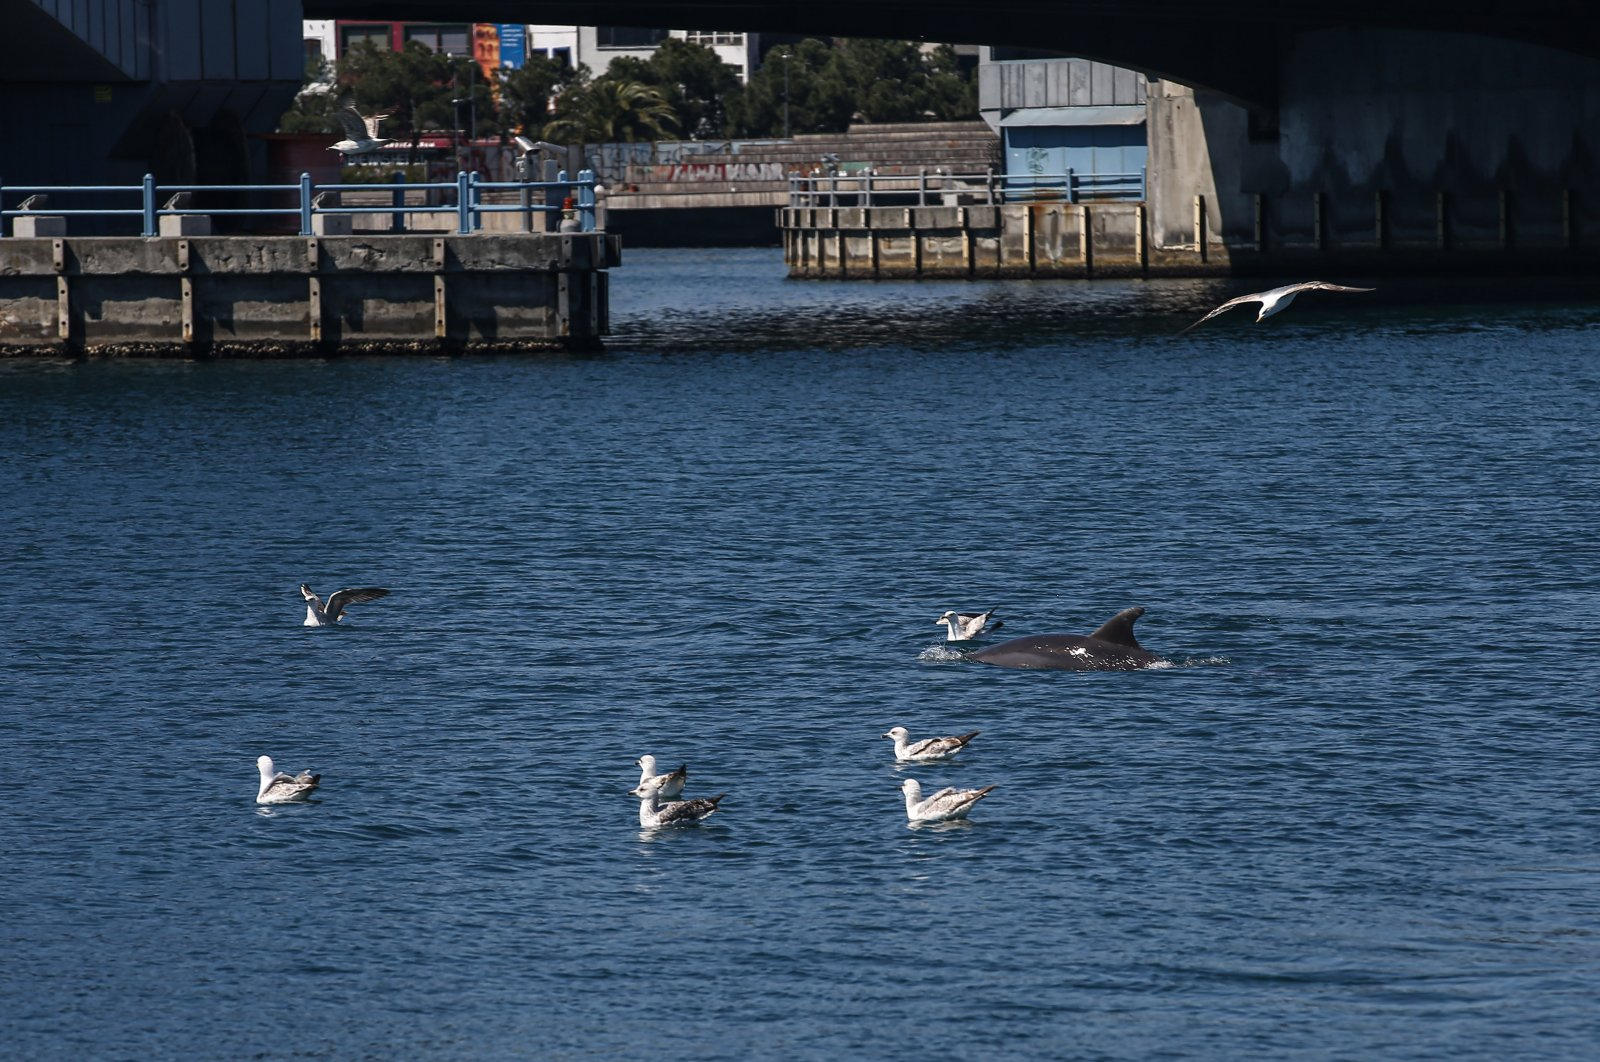 A dolphin swimming among seagulls in Istanbul's Eminönü, Saturday, April 18, 2020. (AA Photo)